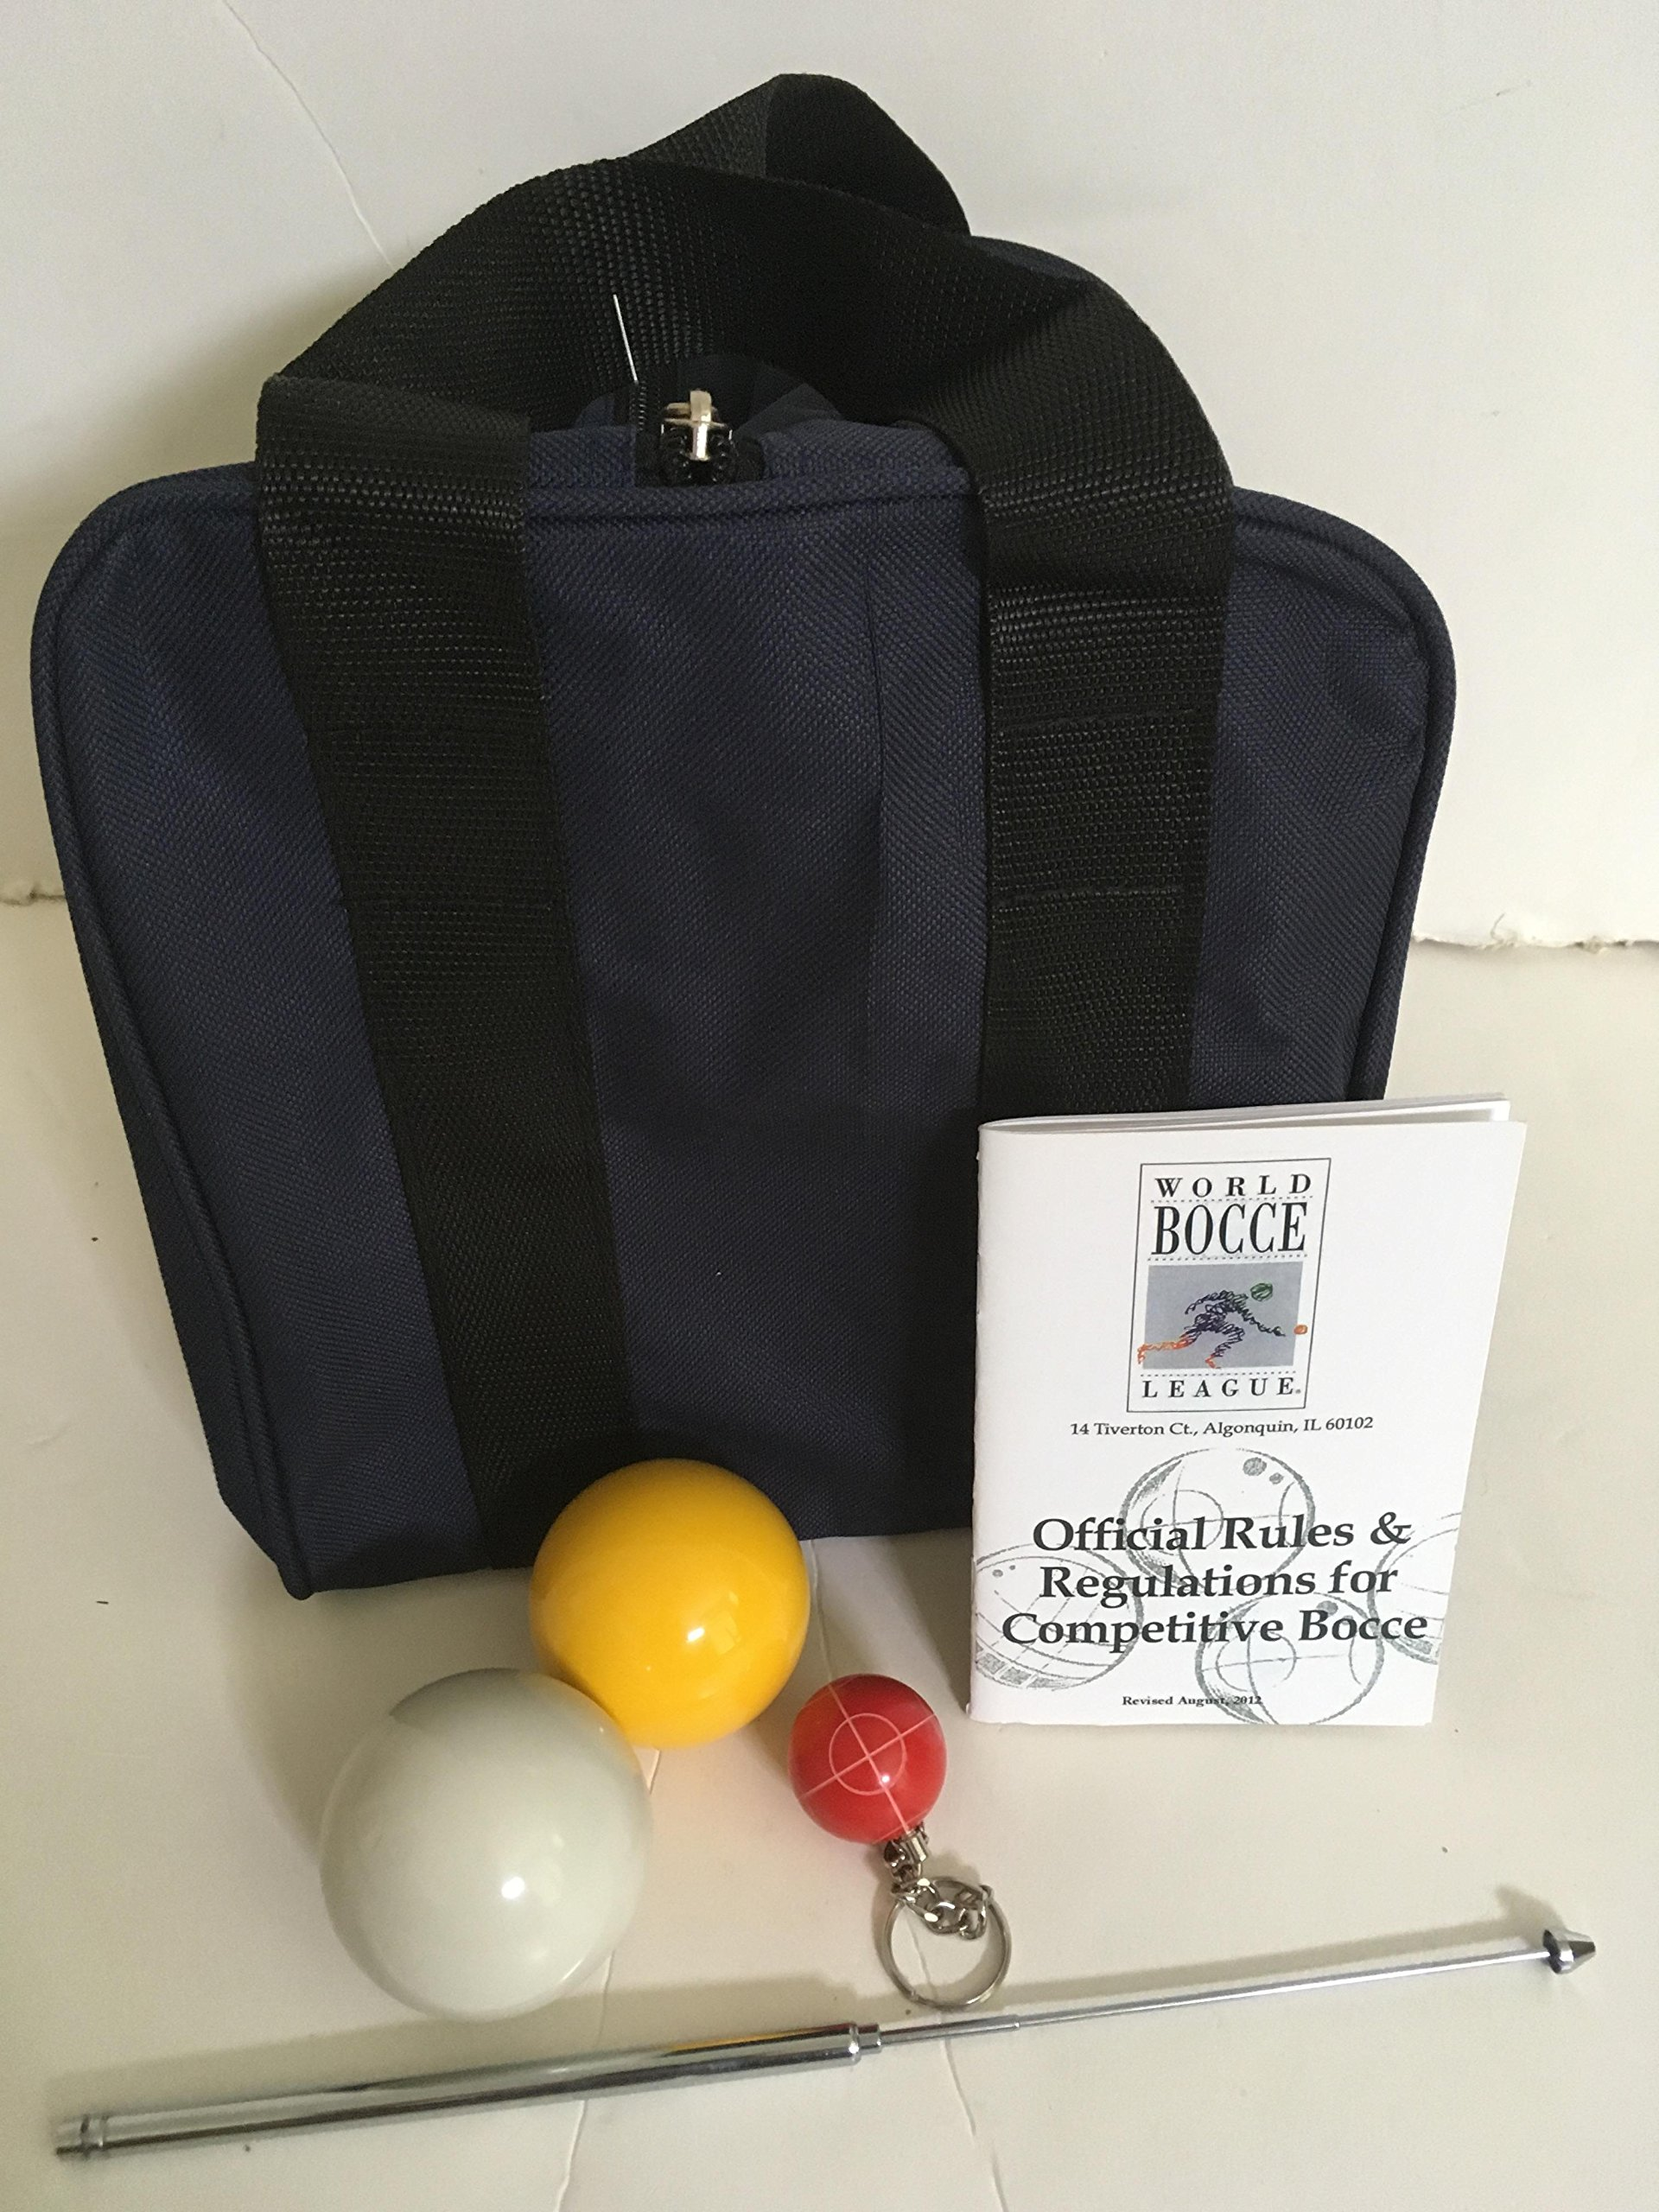 Unique Bocce Ball Accessories Package - Extra Heavy Duty Nylon Bocce Bag (Blue with Black Handles), yellow and white pallinas, Extendable Measuring Device, Rule Book and Keychain by BuyBocceBalls